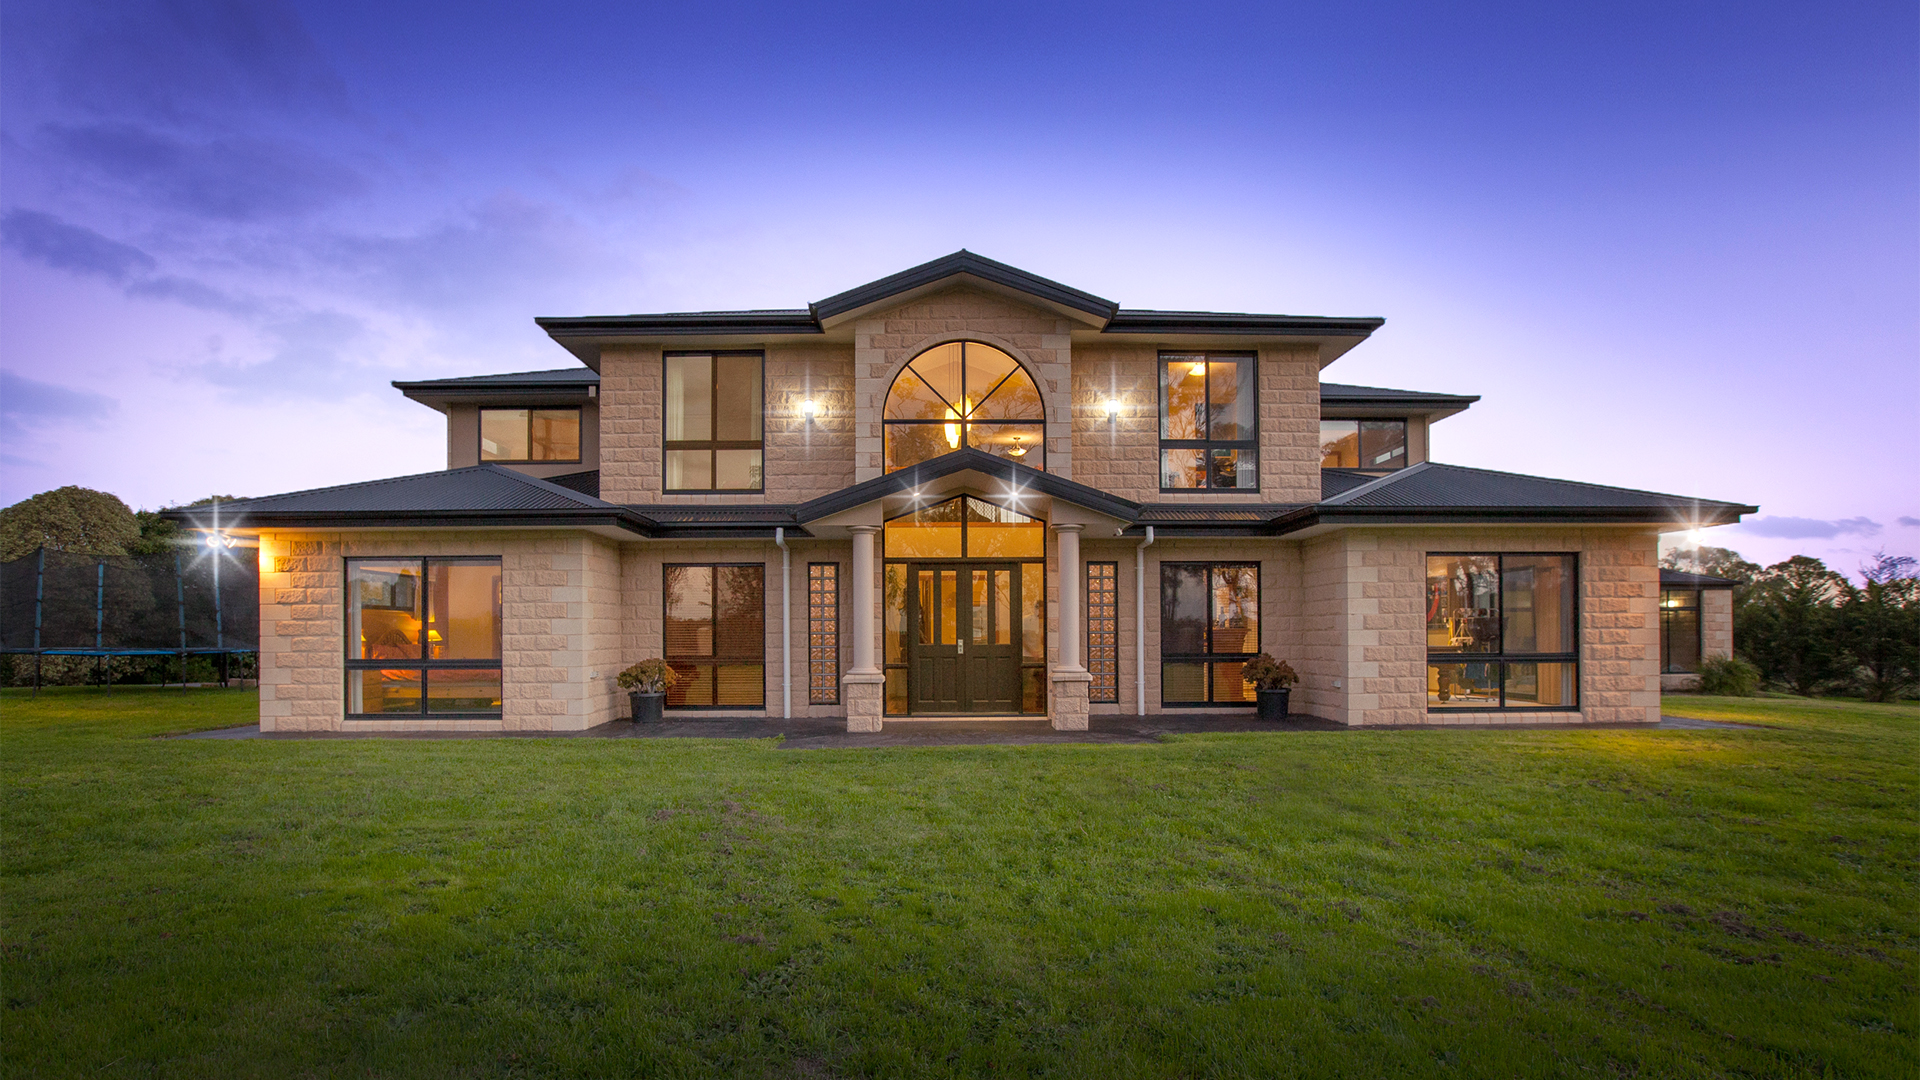 Real Estate photography – What not to do